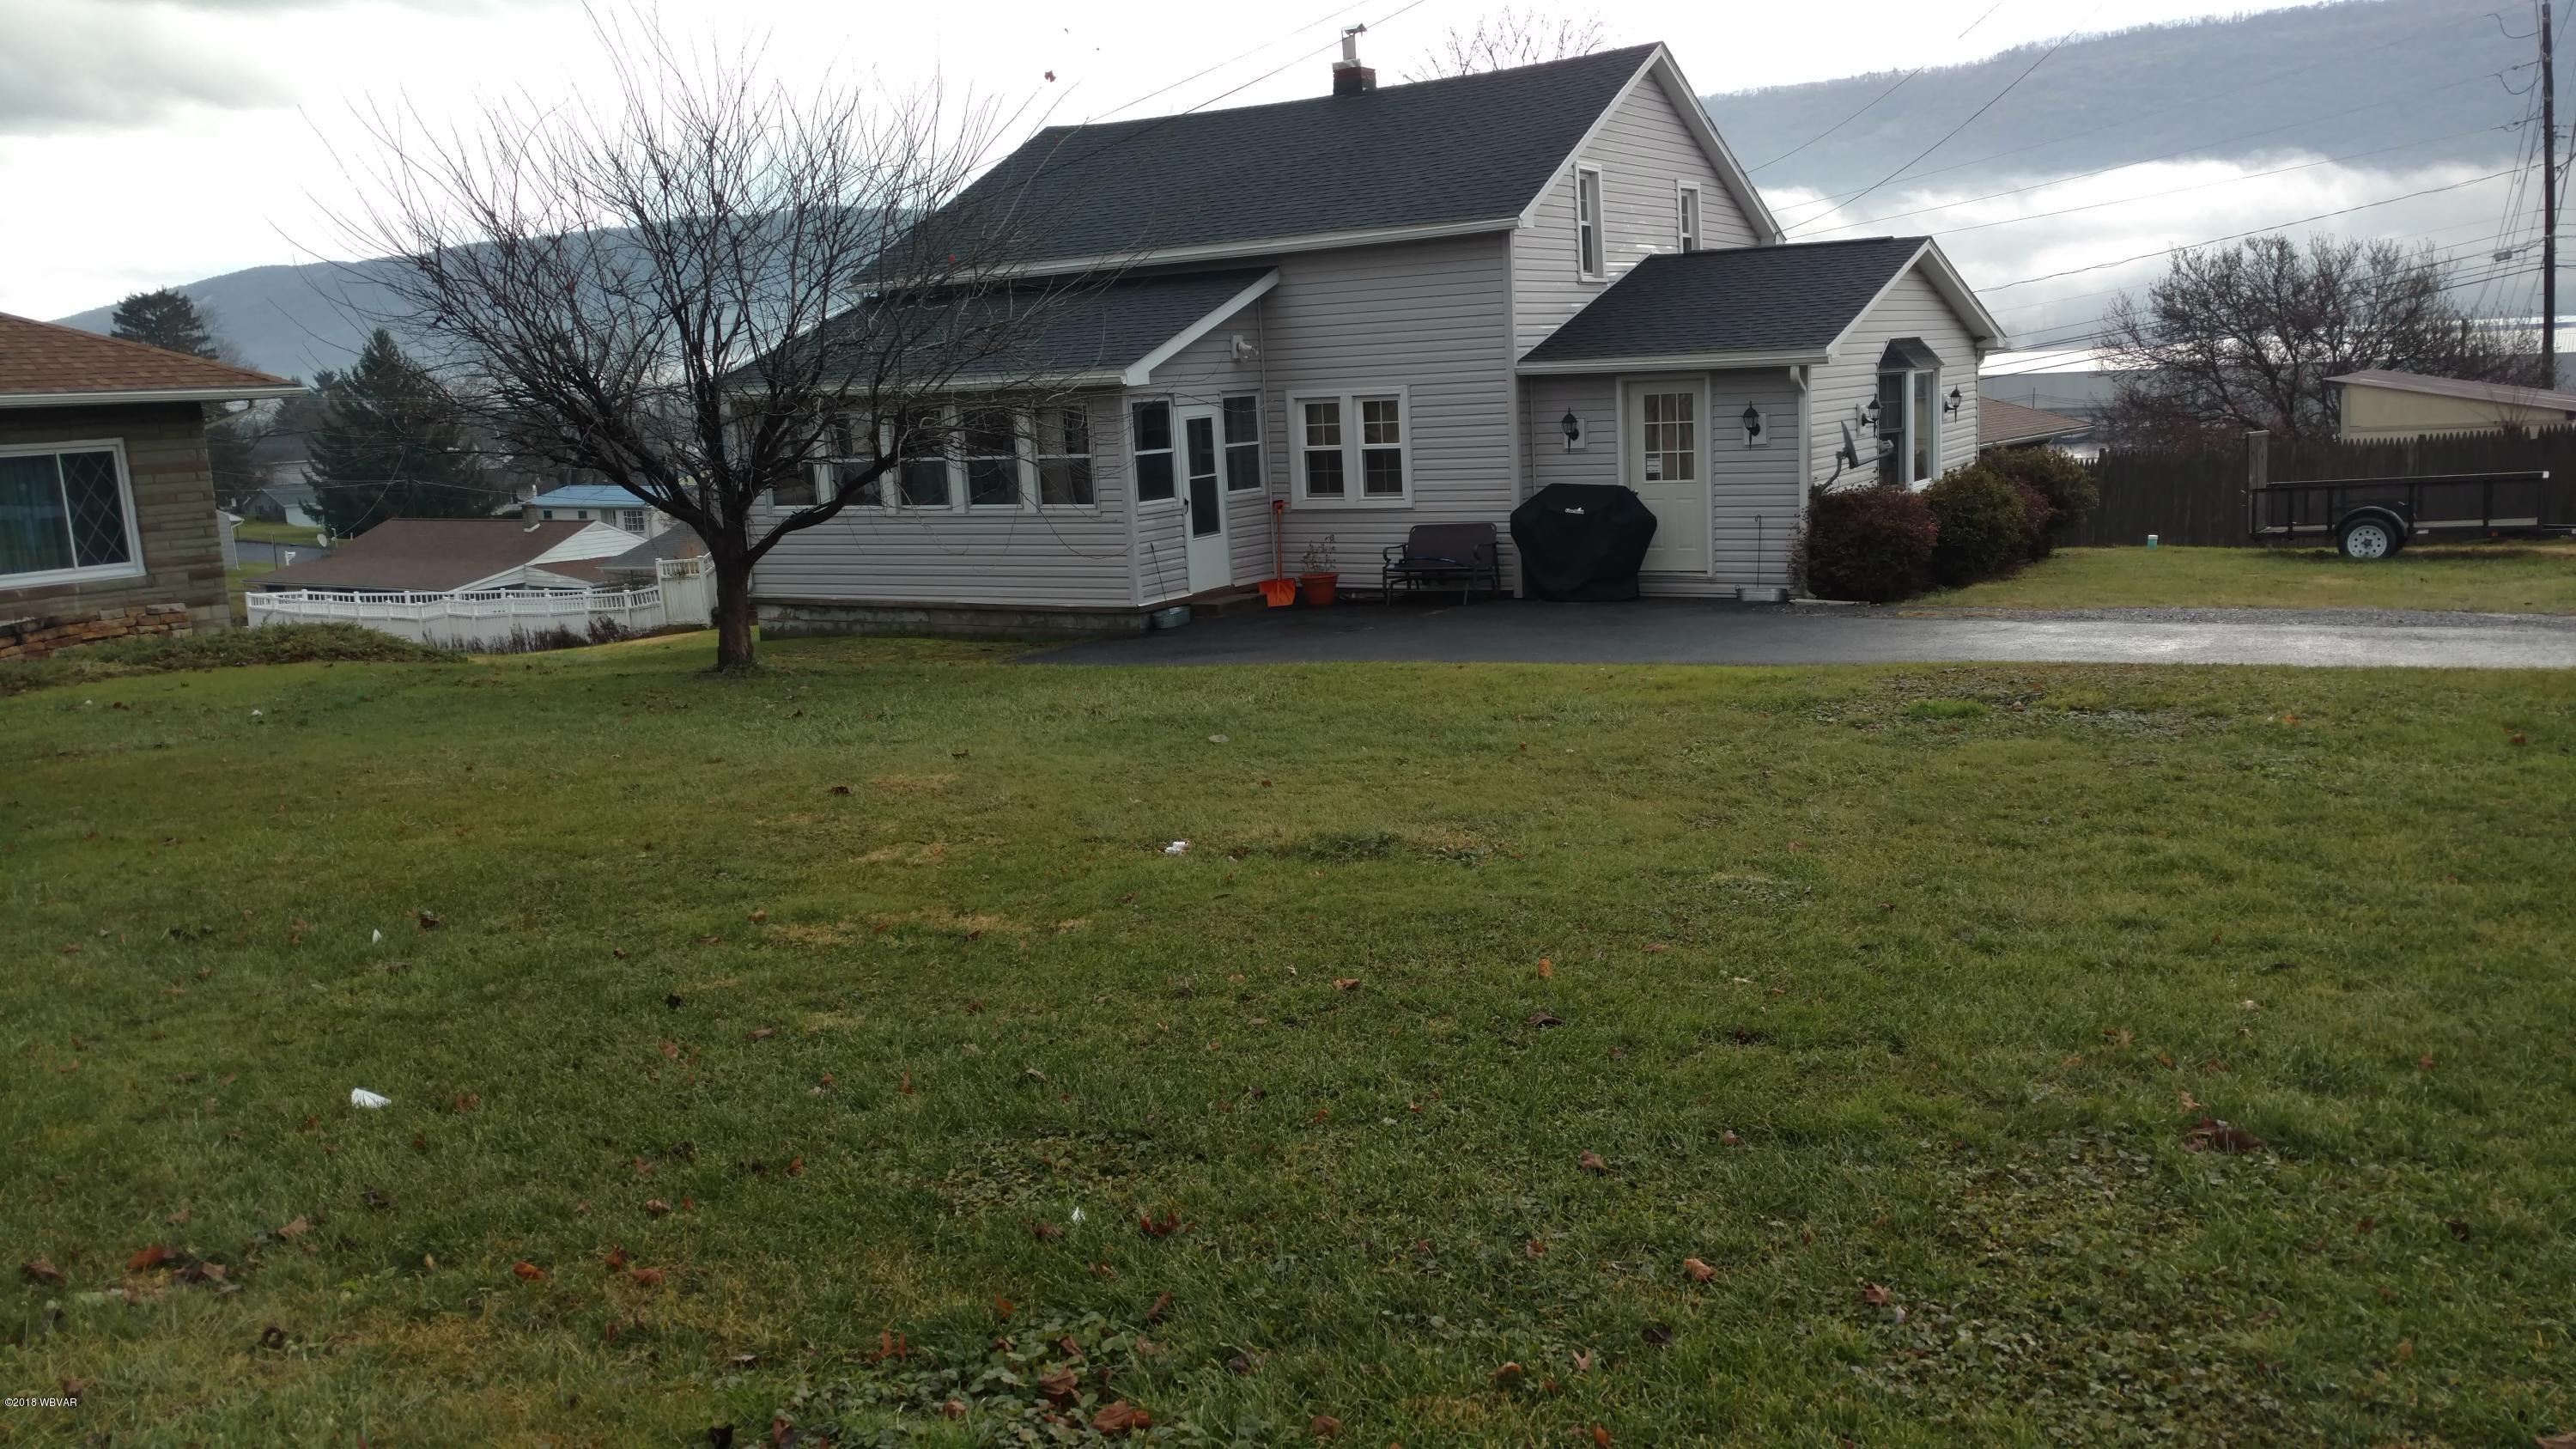 330 SECOND AVENUE,Lock Haven,PA 17745,4 Bedrooms Bedrooms,2 BathroomsBathrooms,Residential,SECOND,WB-86098